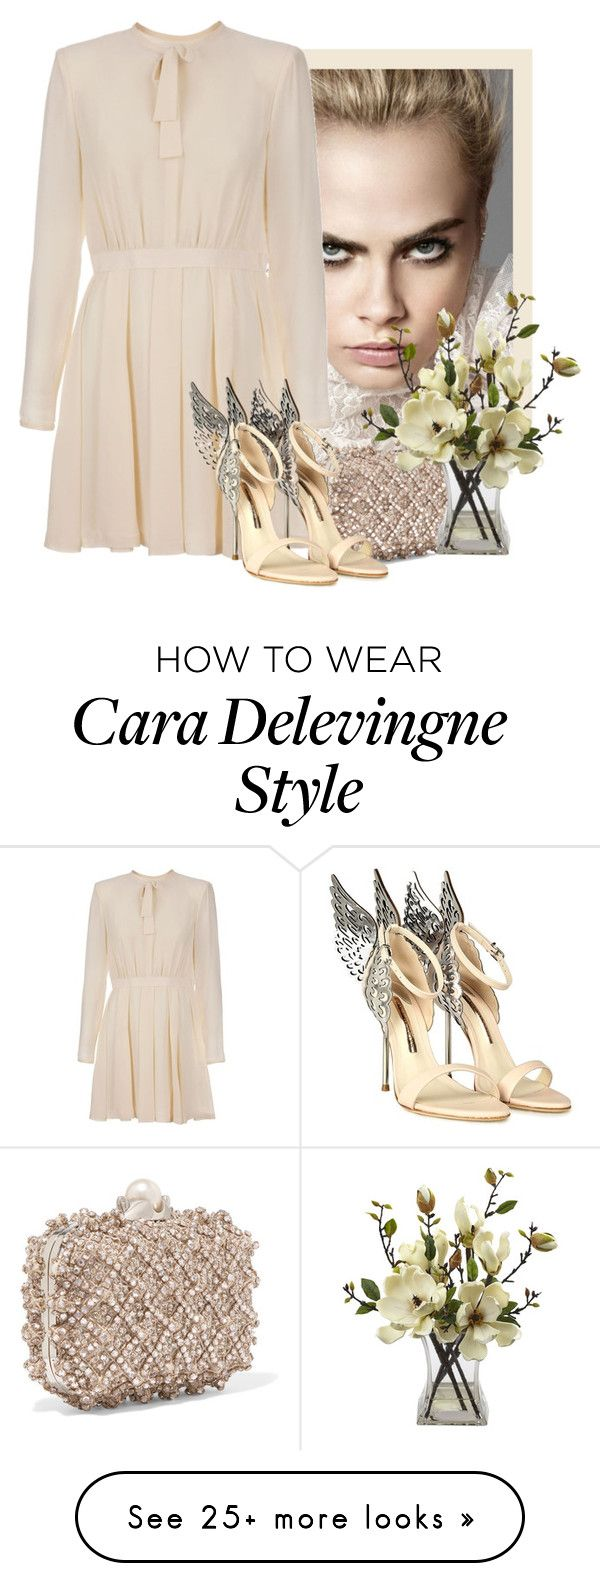 """Cara"" by flordemaria on Polyvore featuring By Terry, Giambattista Valli, Jimmy Choo, Nearly Natural and Sophia Webster"